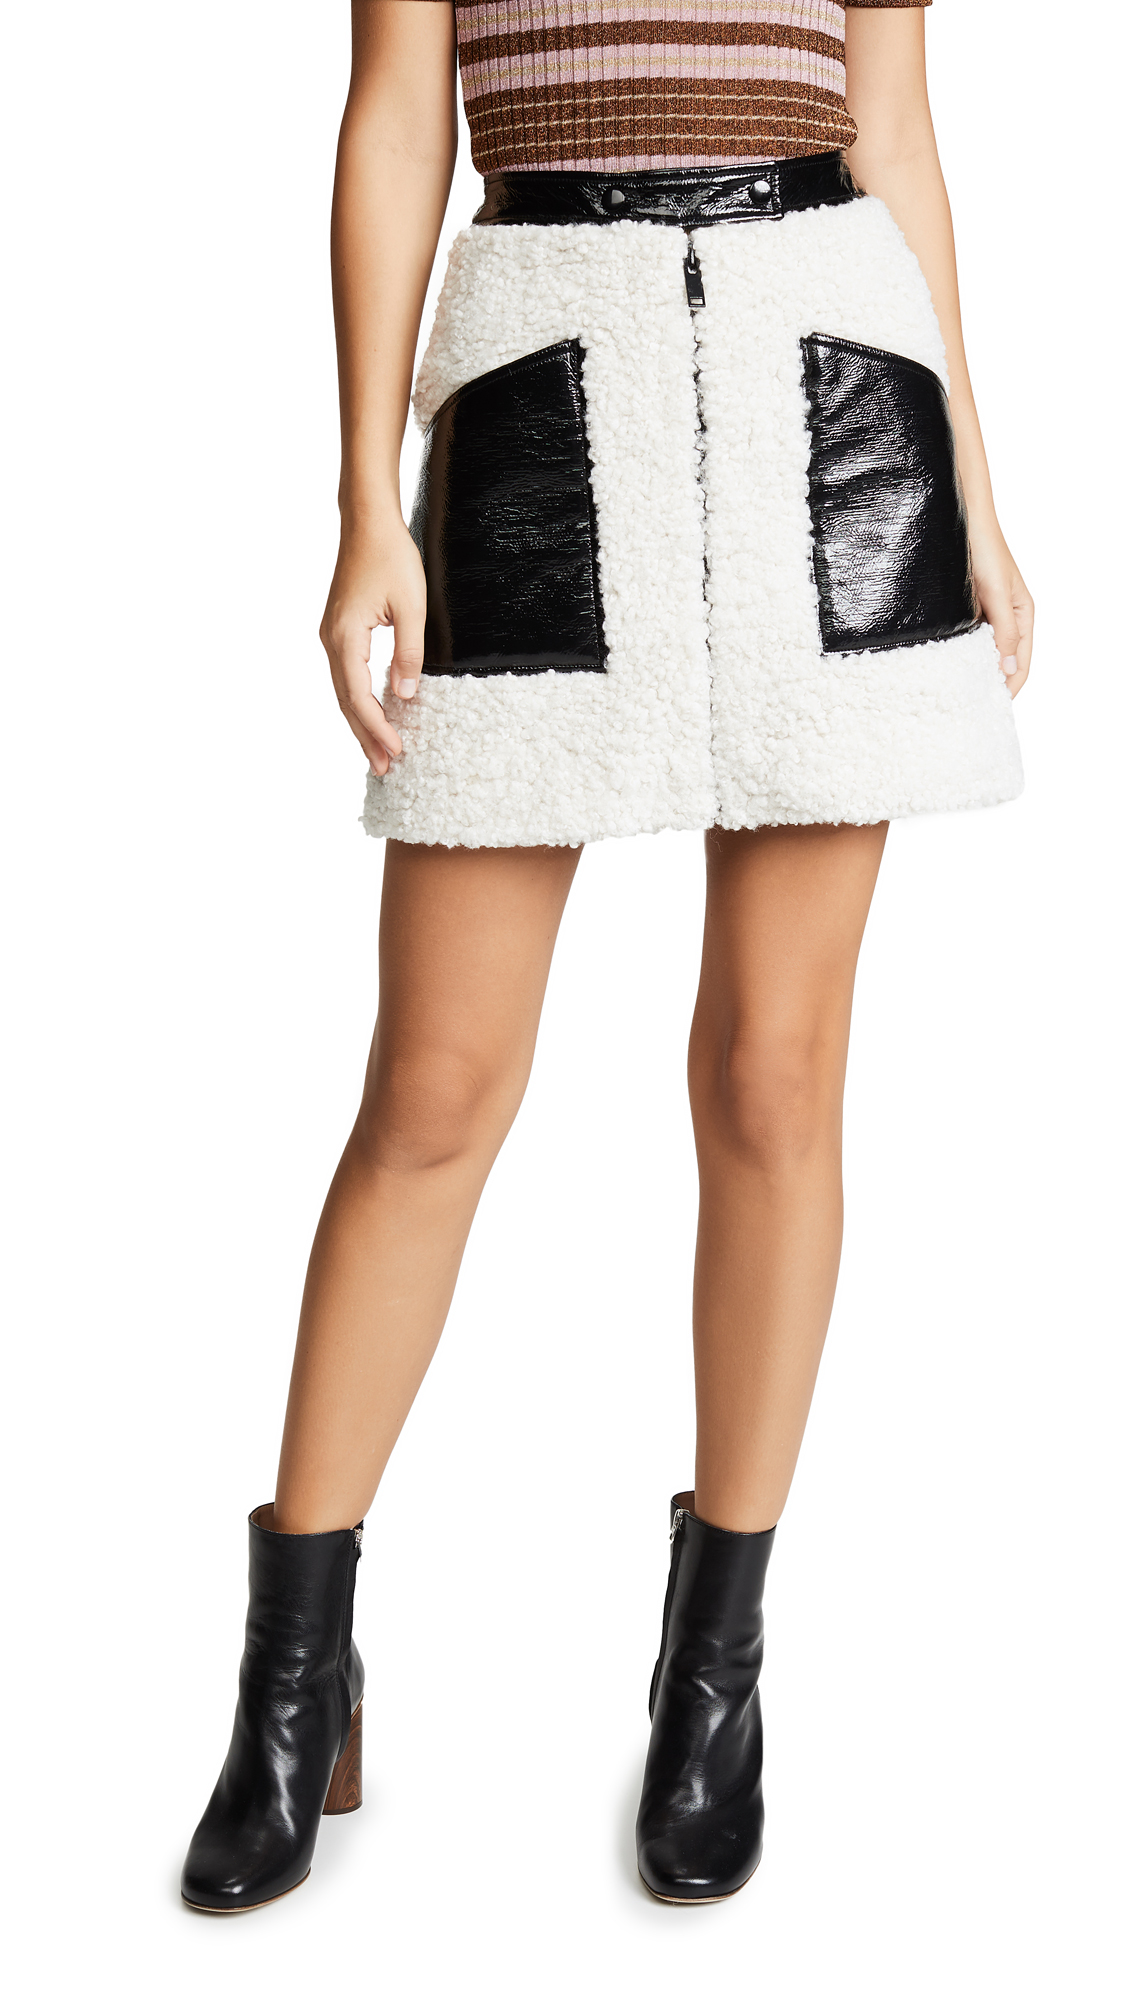 Courreges Sherpa Miniskirt In Black/White